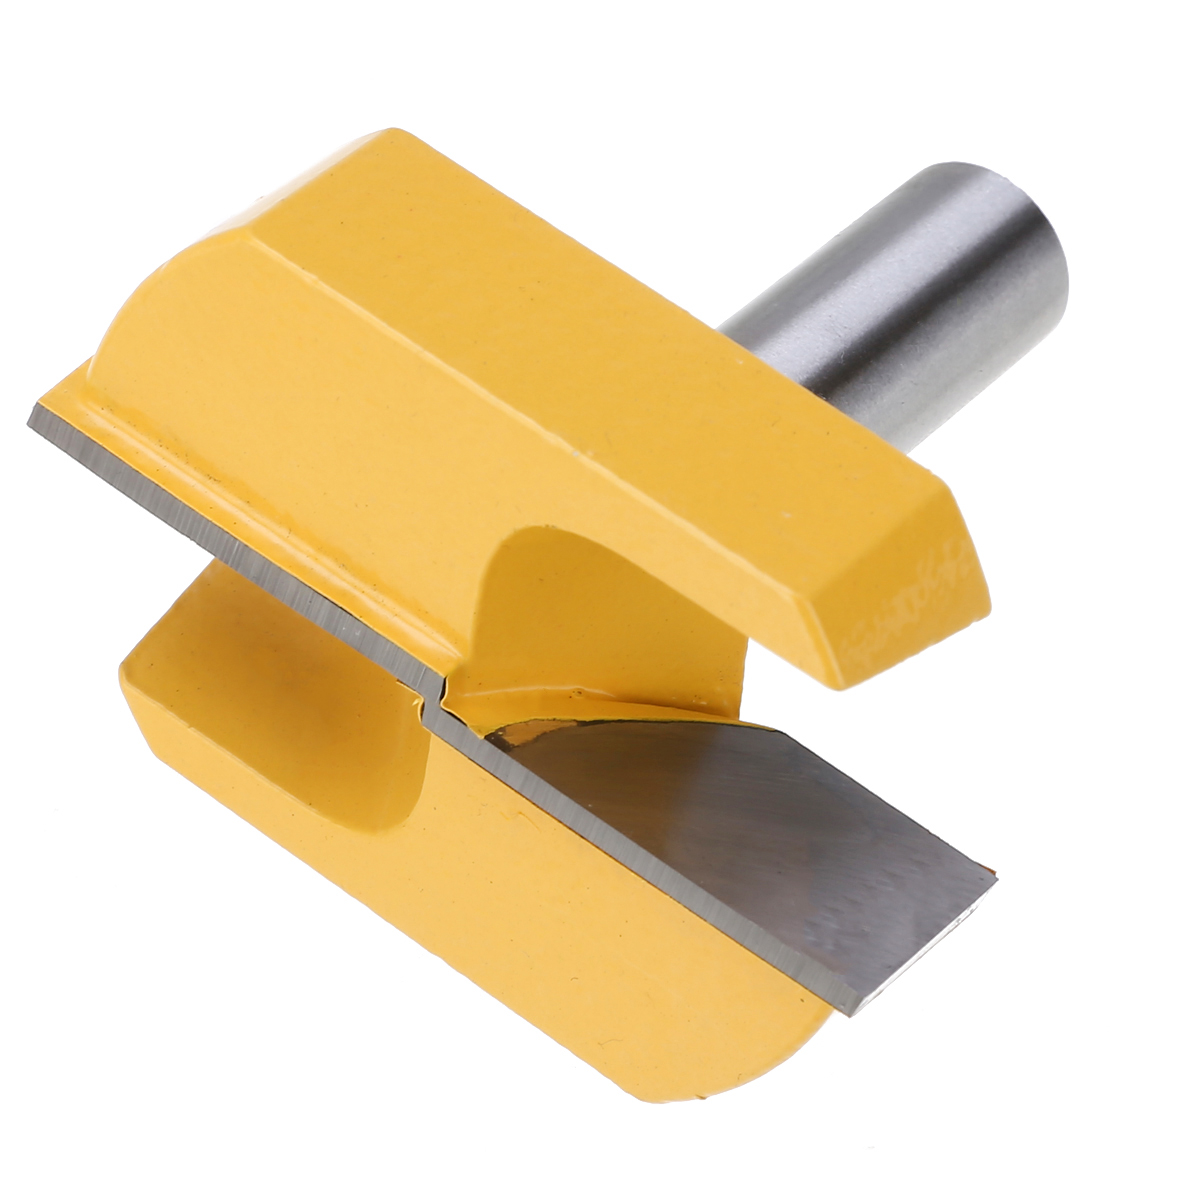 """Mayitr Carbide Alloy 1/2"""" Shank 2-1/4"""" Dia Bottom Cleaning Router Bit Woodworking Milling Cutter Machine Tools & Accessories"""